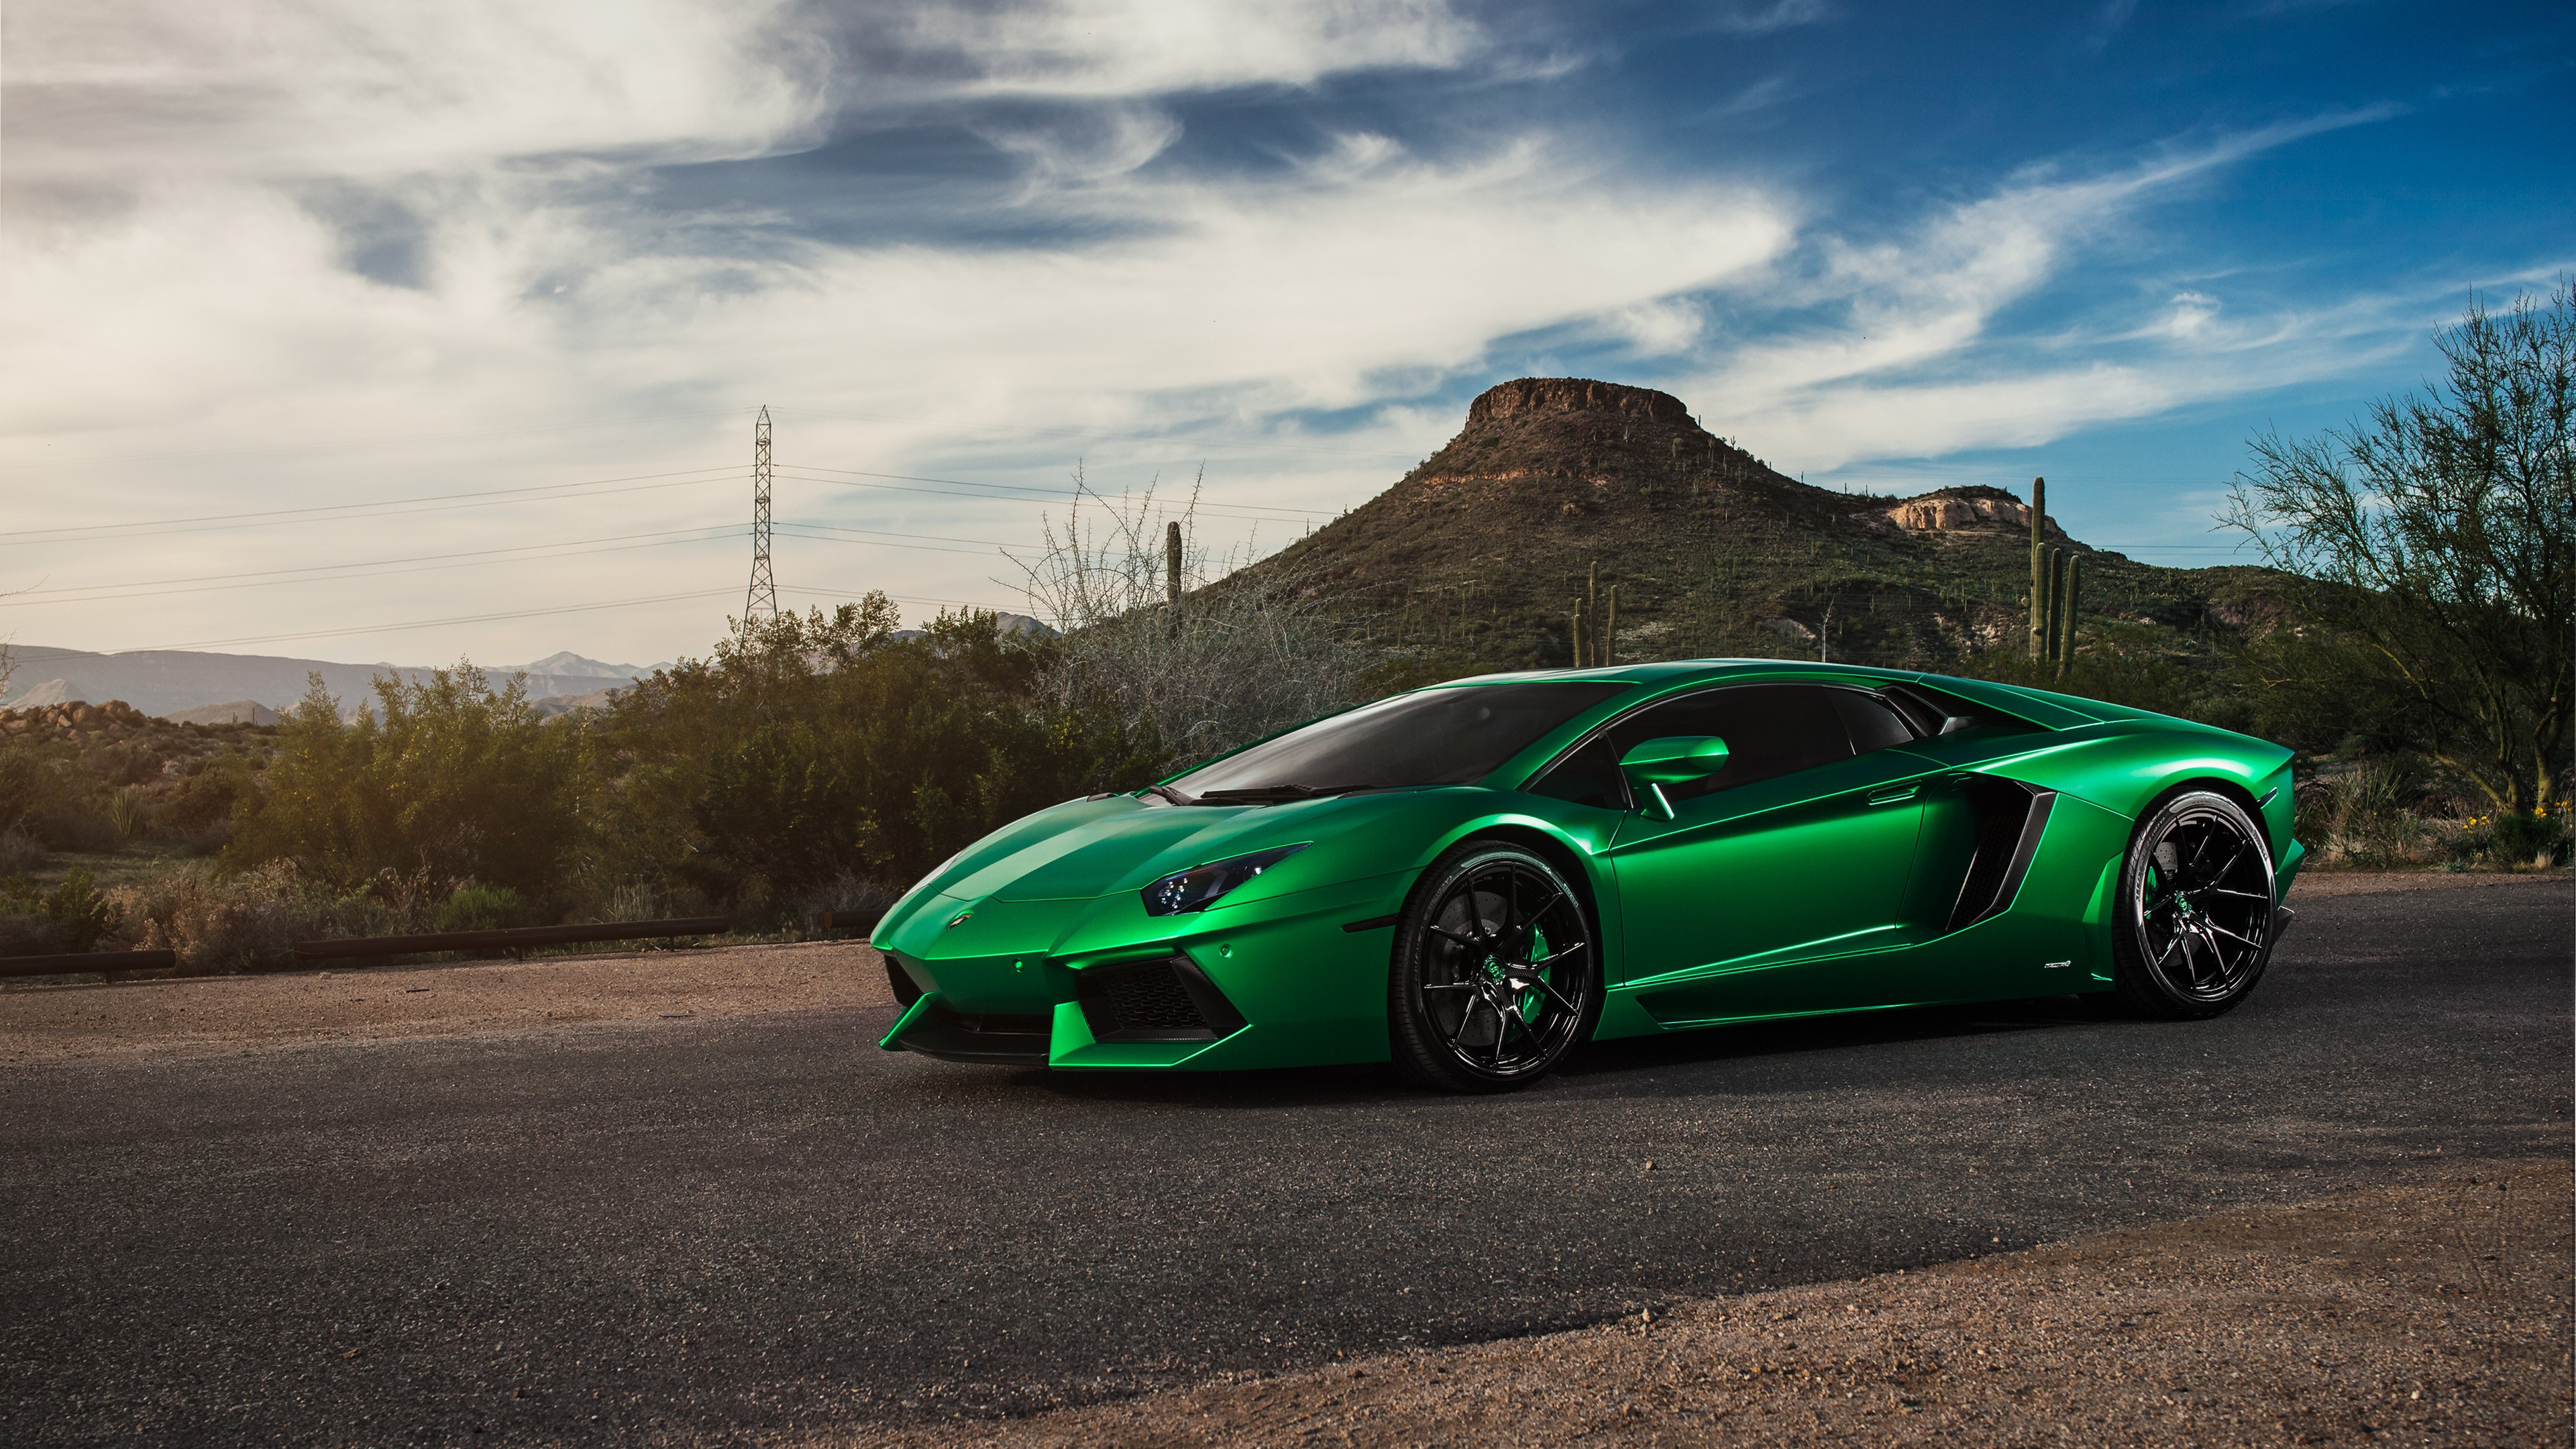 Lamborghini Aventador Green 4k Hd Cars 4k Wallpapers Images Backgrounds Photos And Pictures